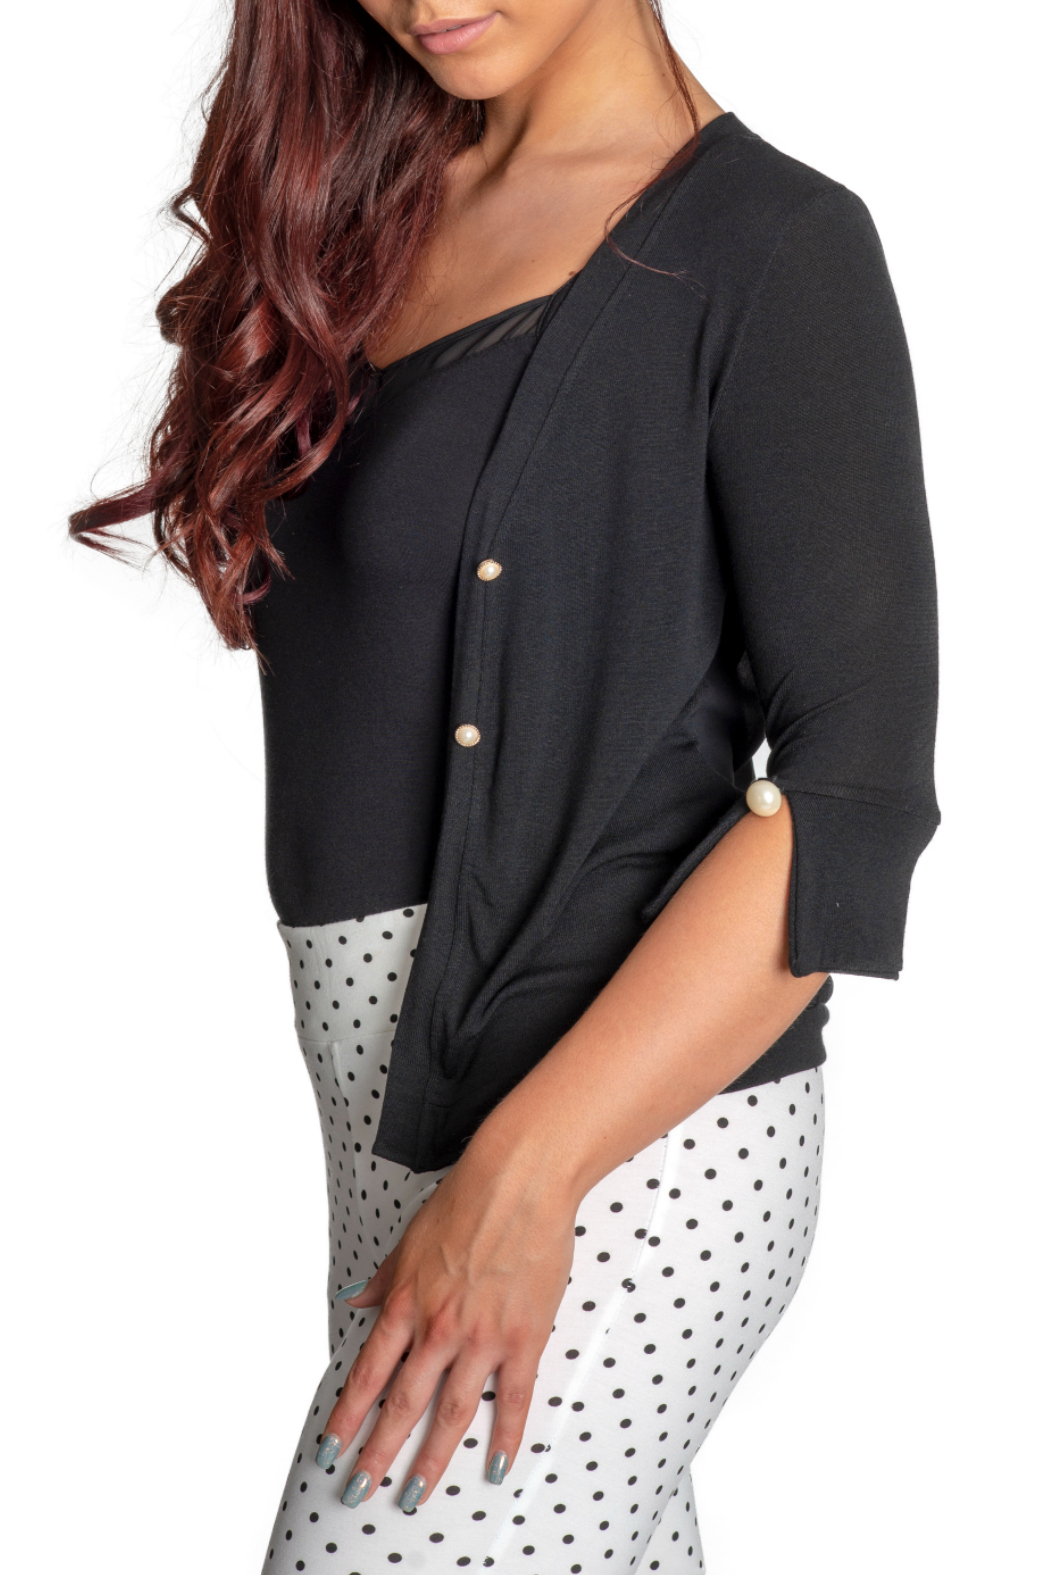 Femme Fatale Chiffon Back Cardigan w Pearl Buttons - Front Full Image